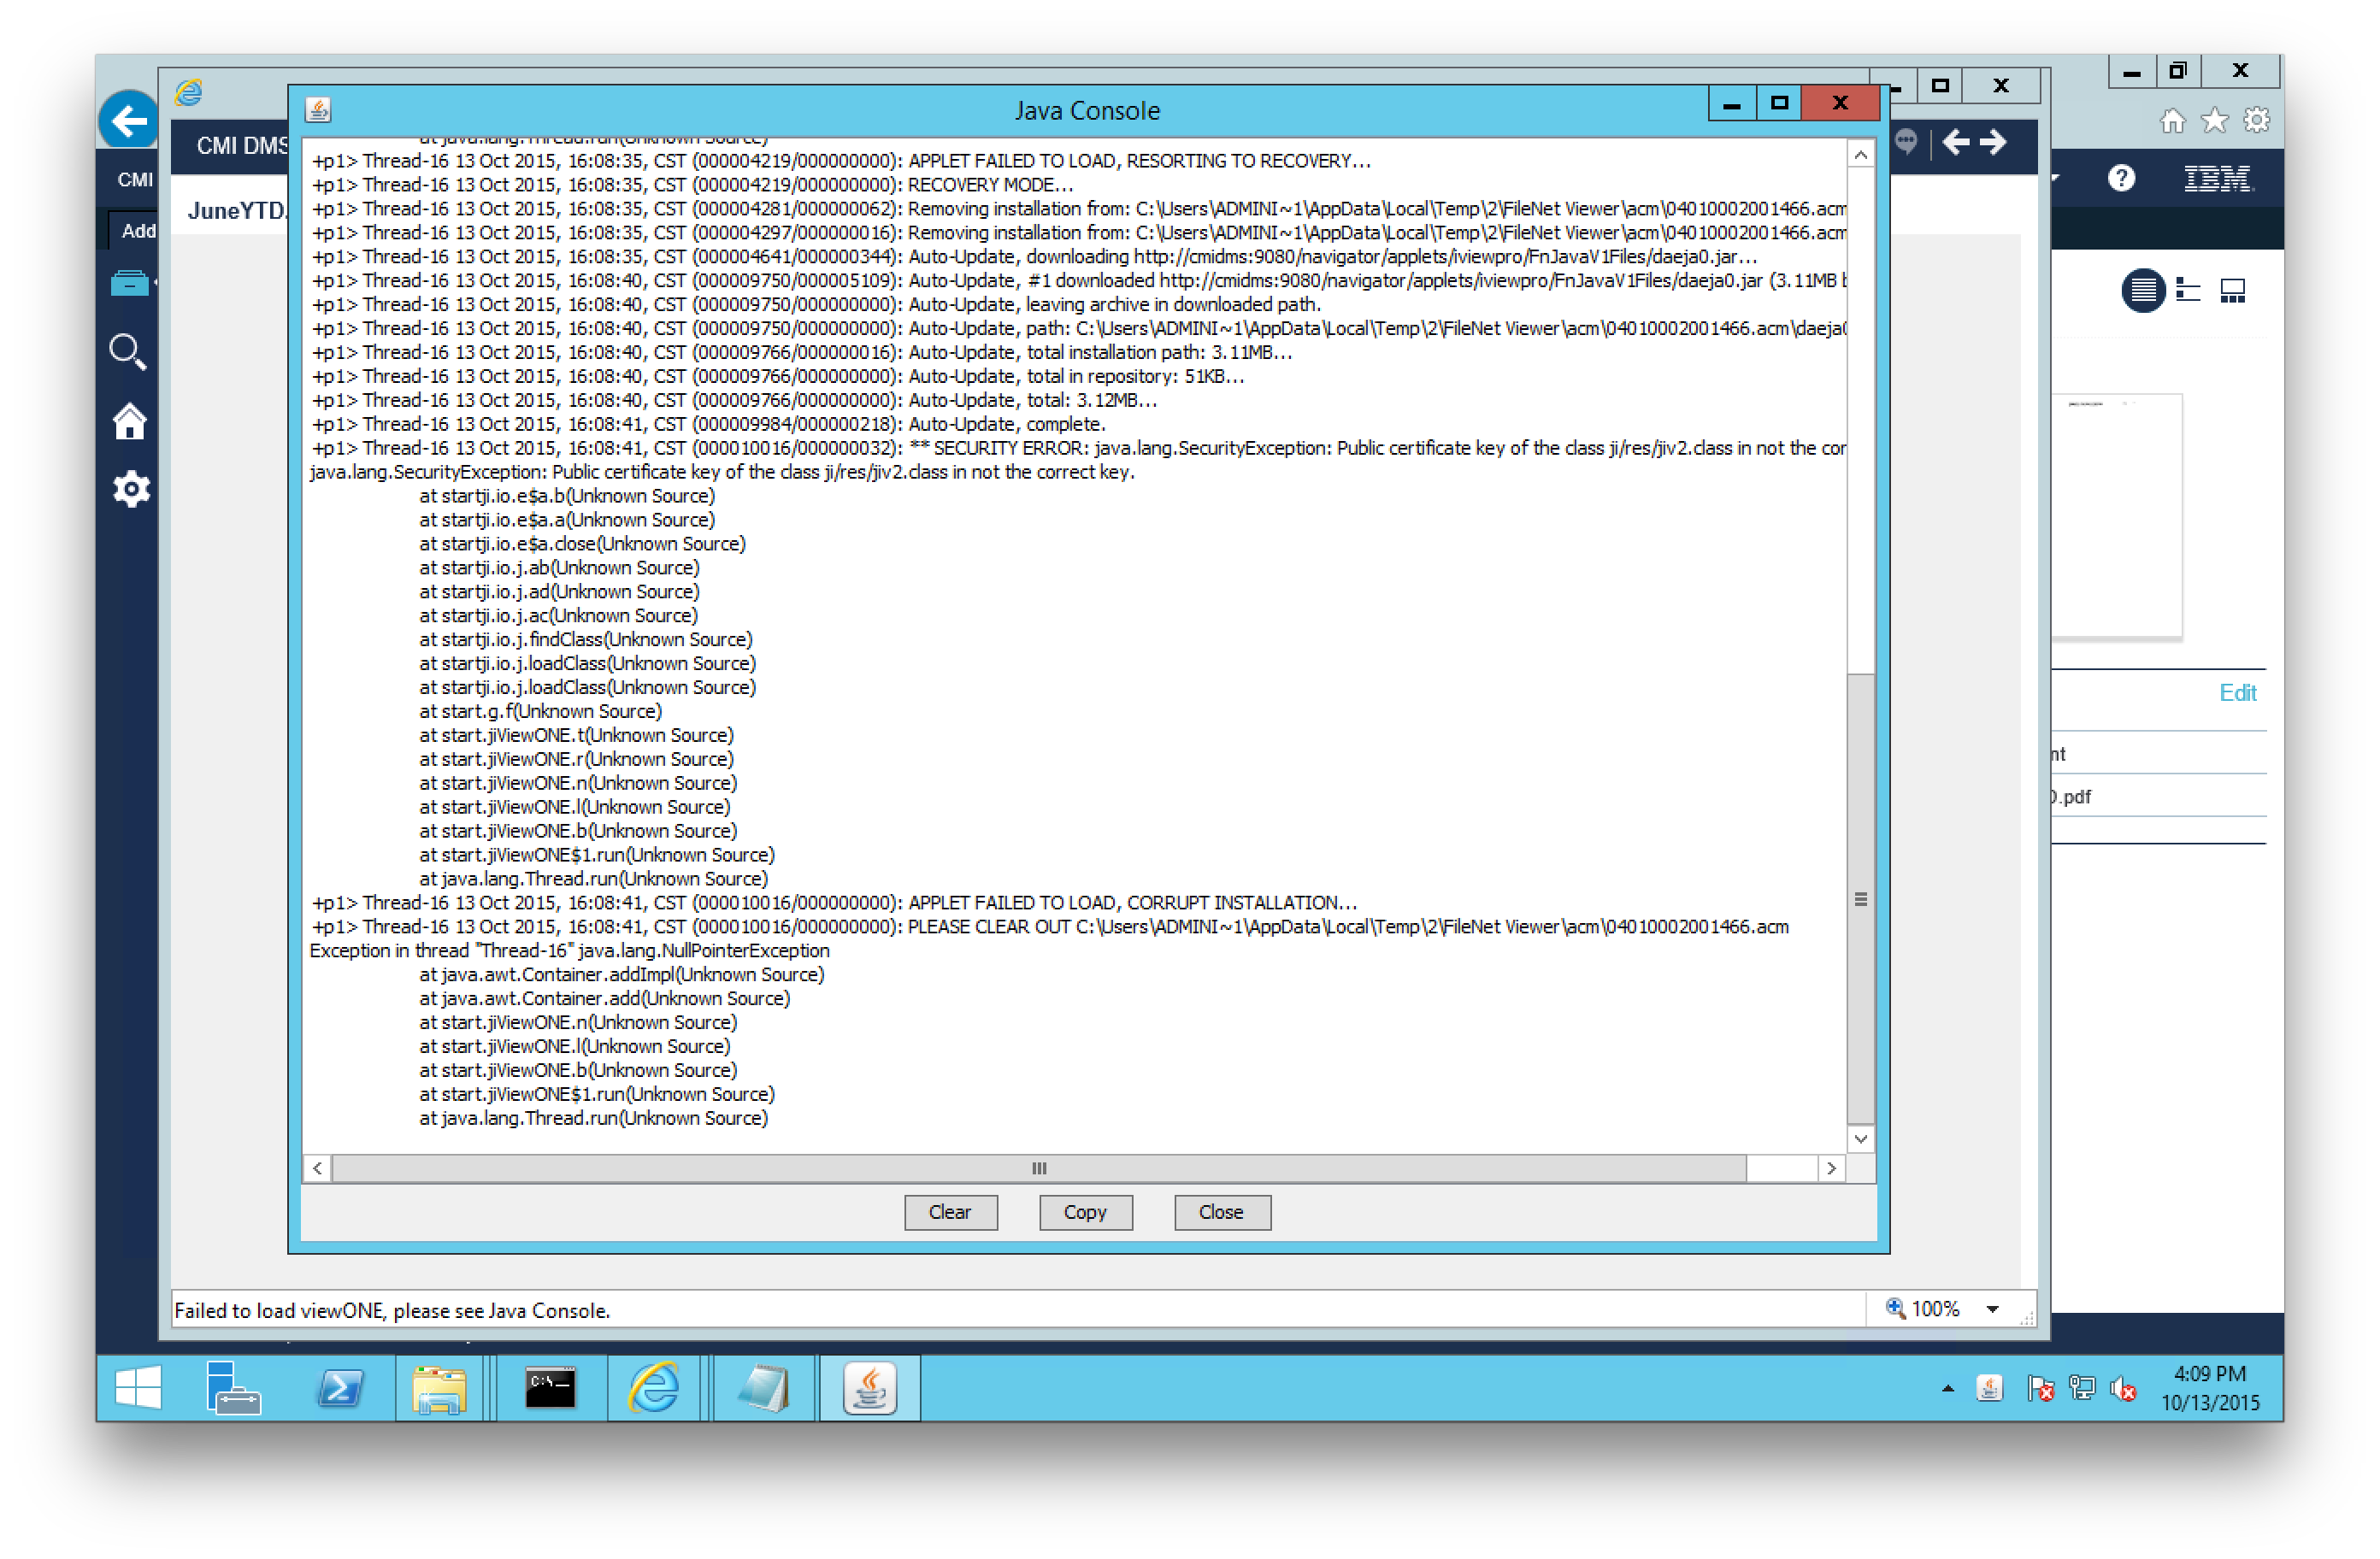 Java how to open a png image in windows viewer. Enterprise content management ibm